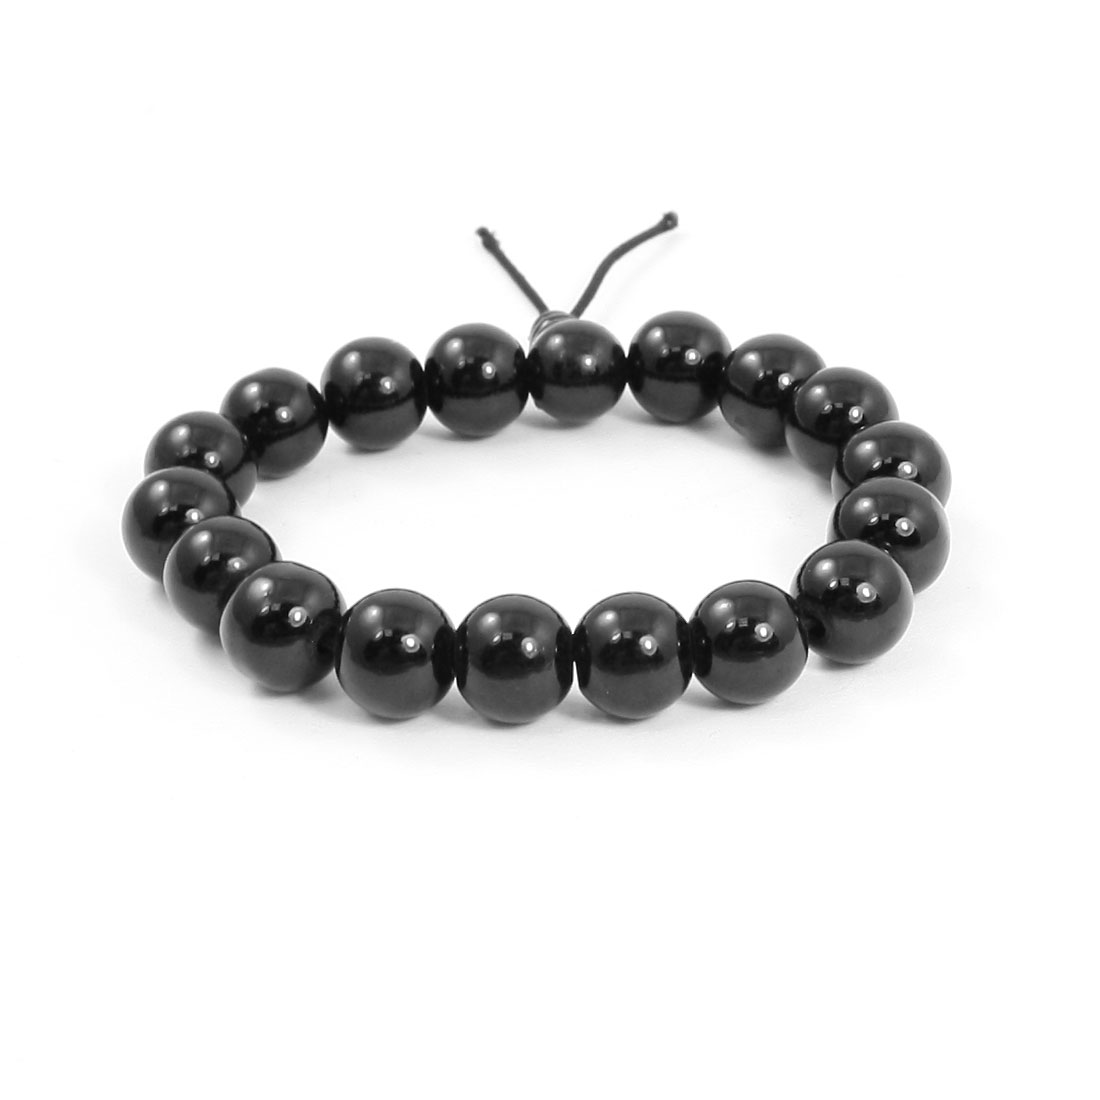 Lady Elastic Band Black Plastic Beads Decoration Waist Bracelet